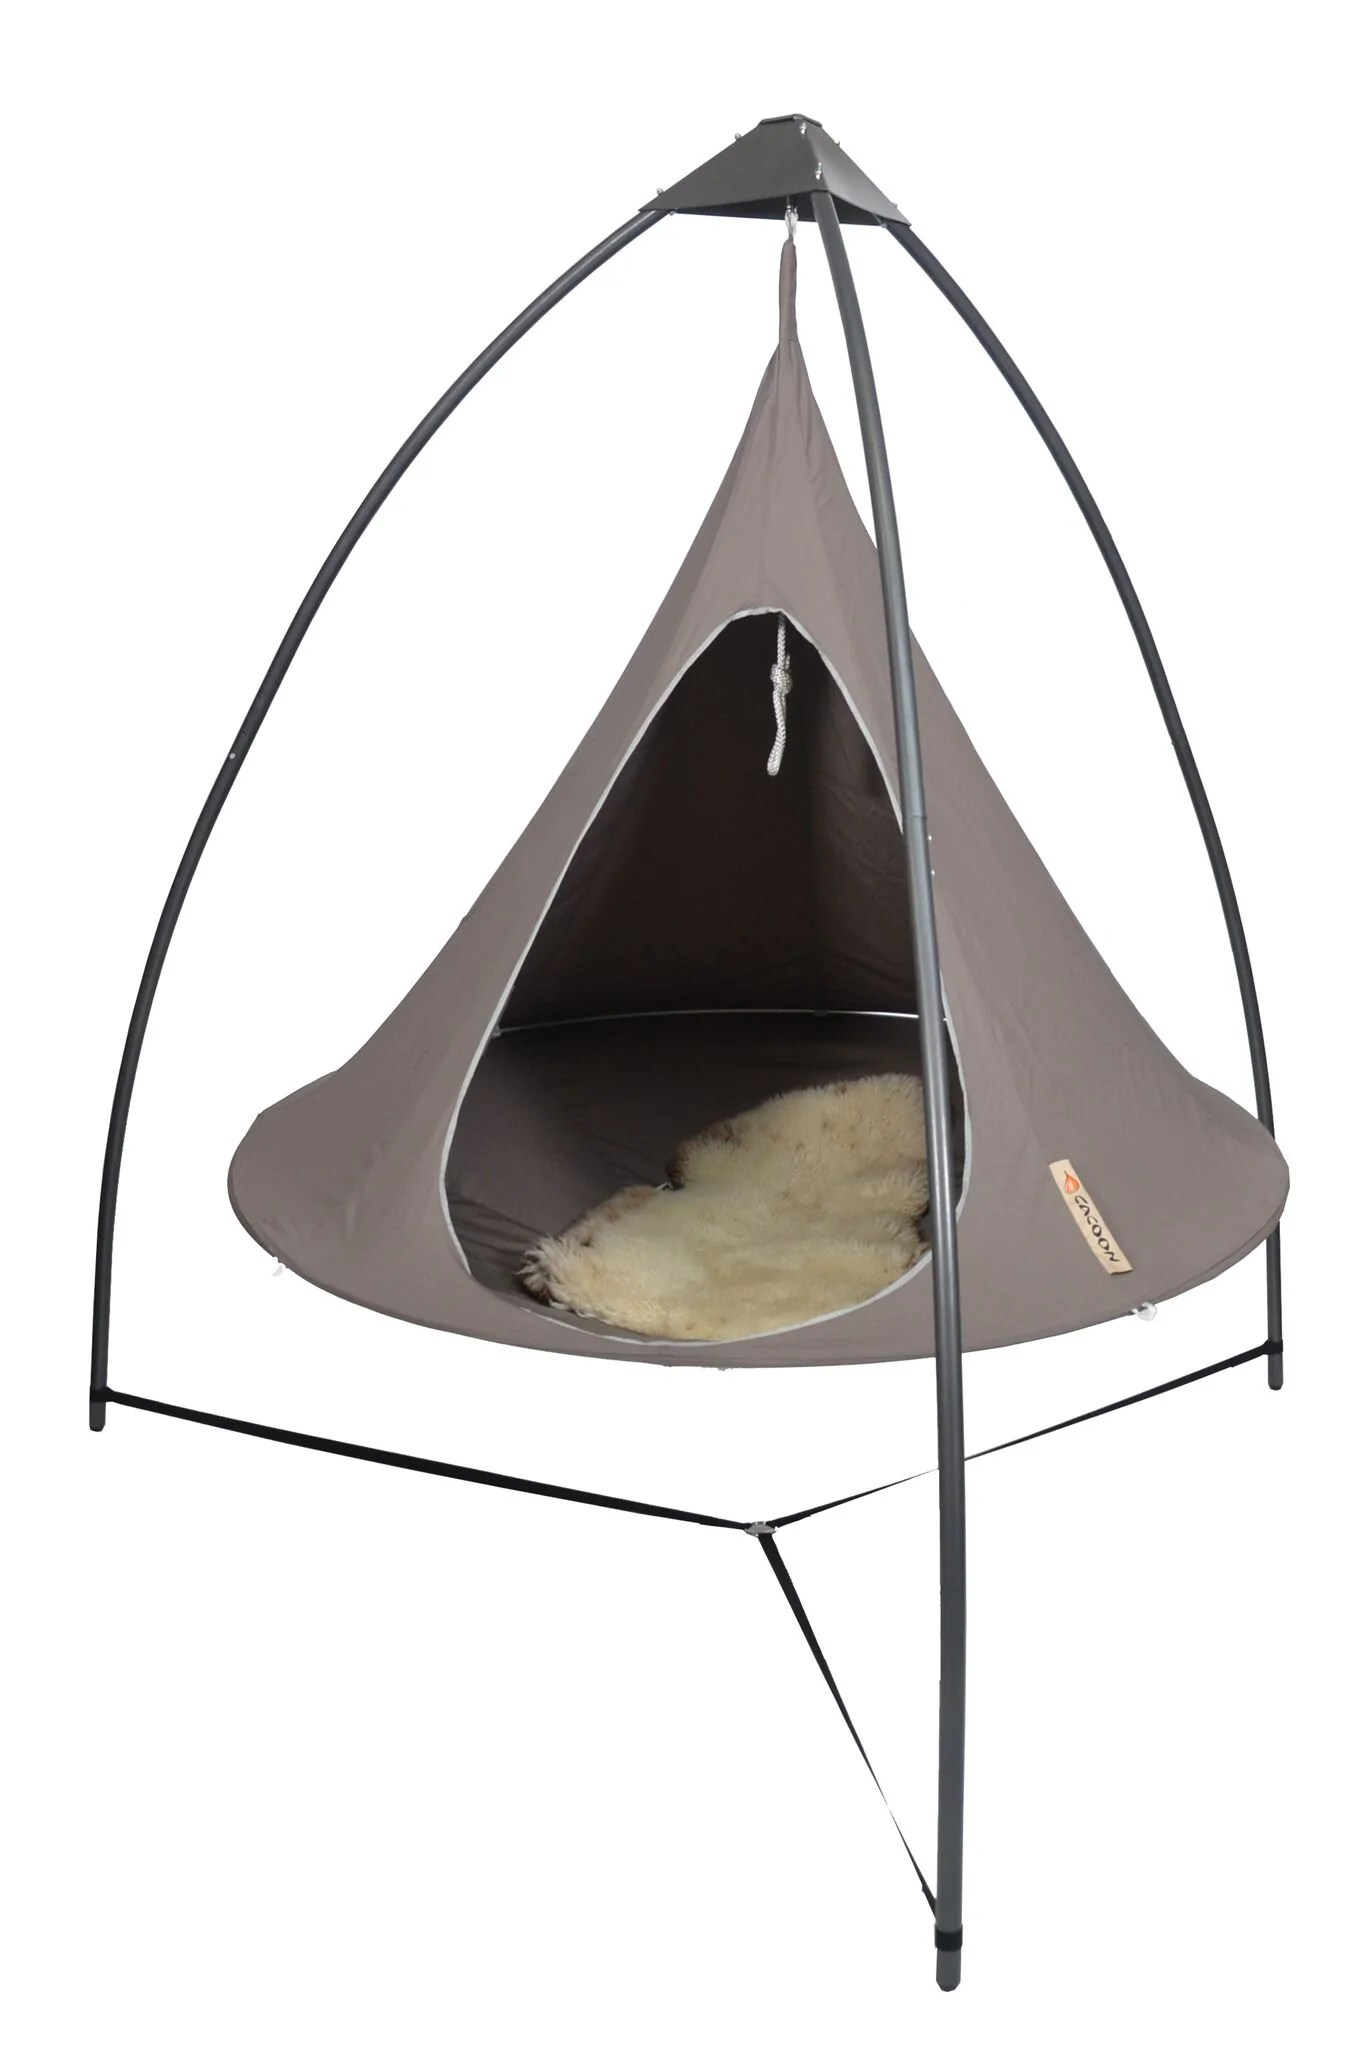 hanging chair double mobile hunter portable shooting cacoon dlk design life kids usa tents on designlifekids com